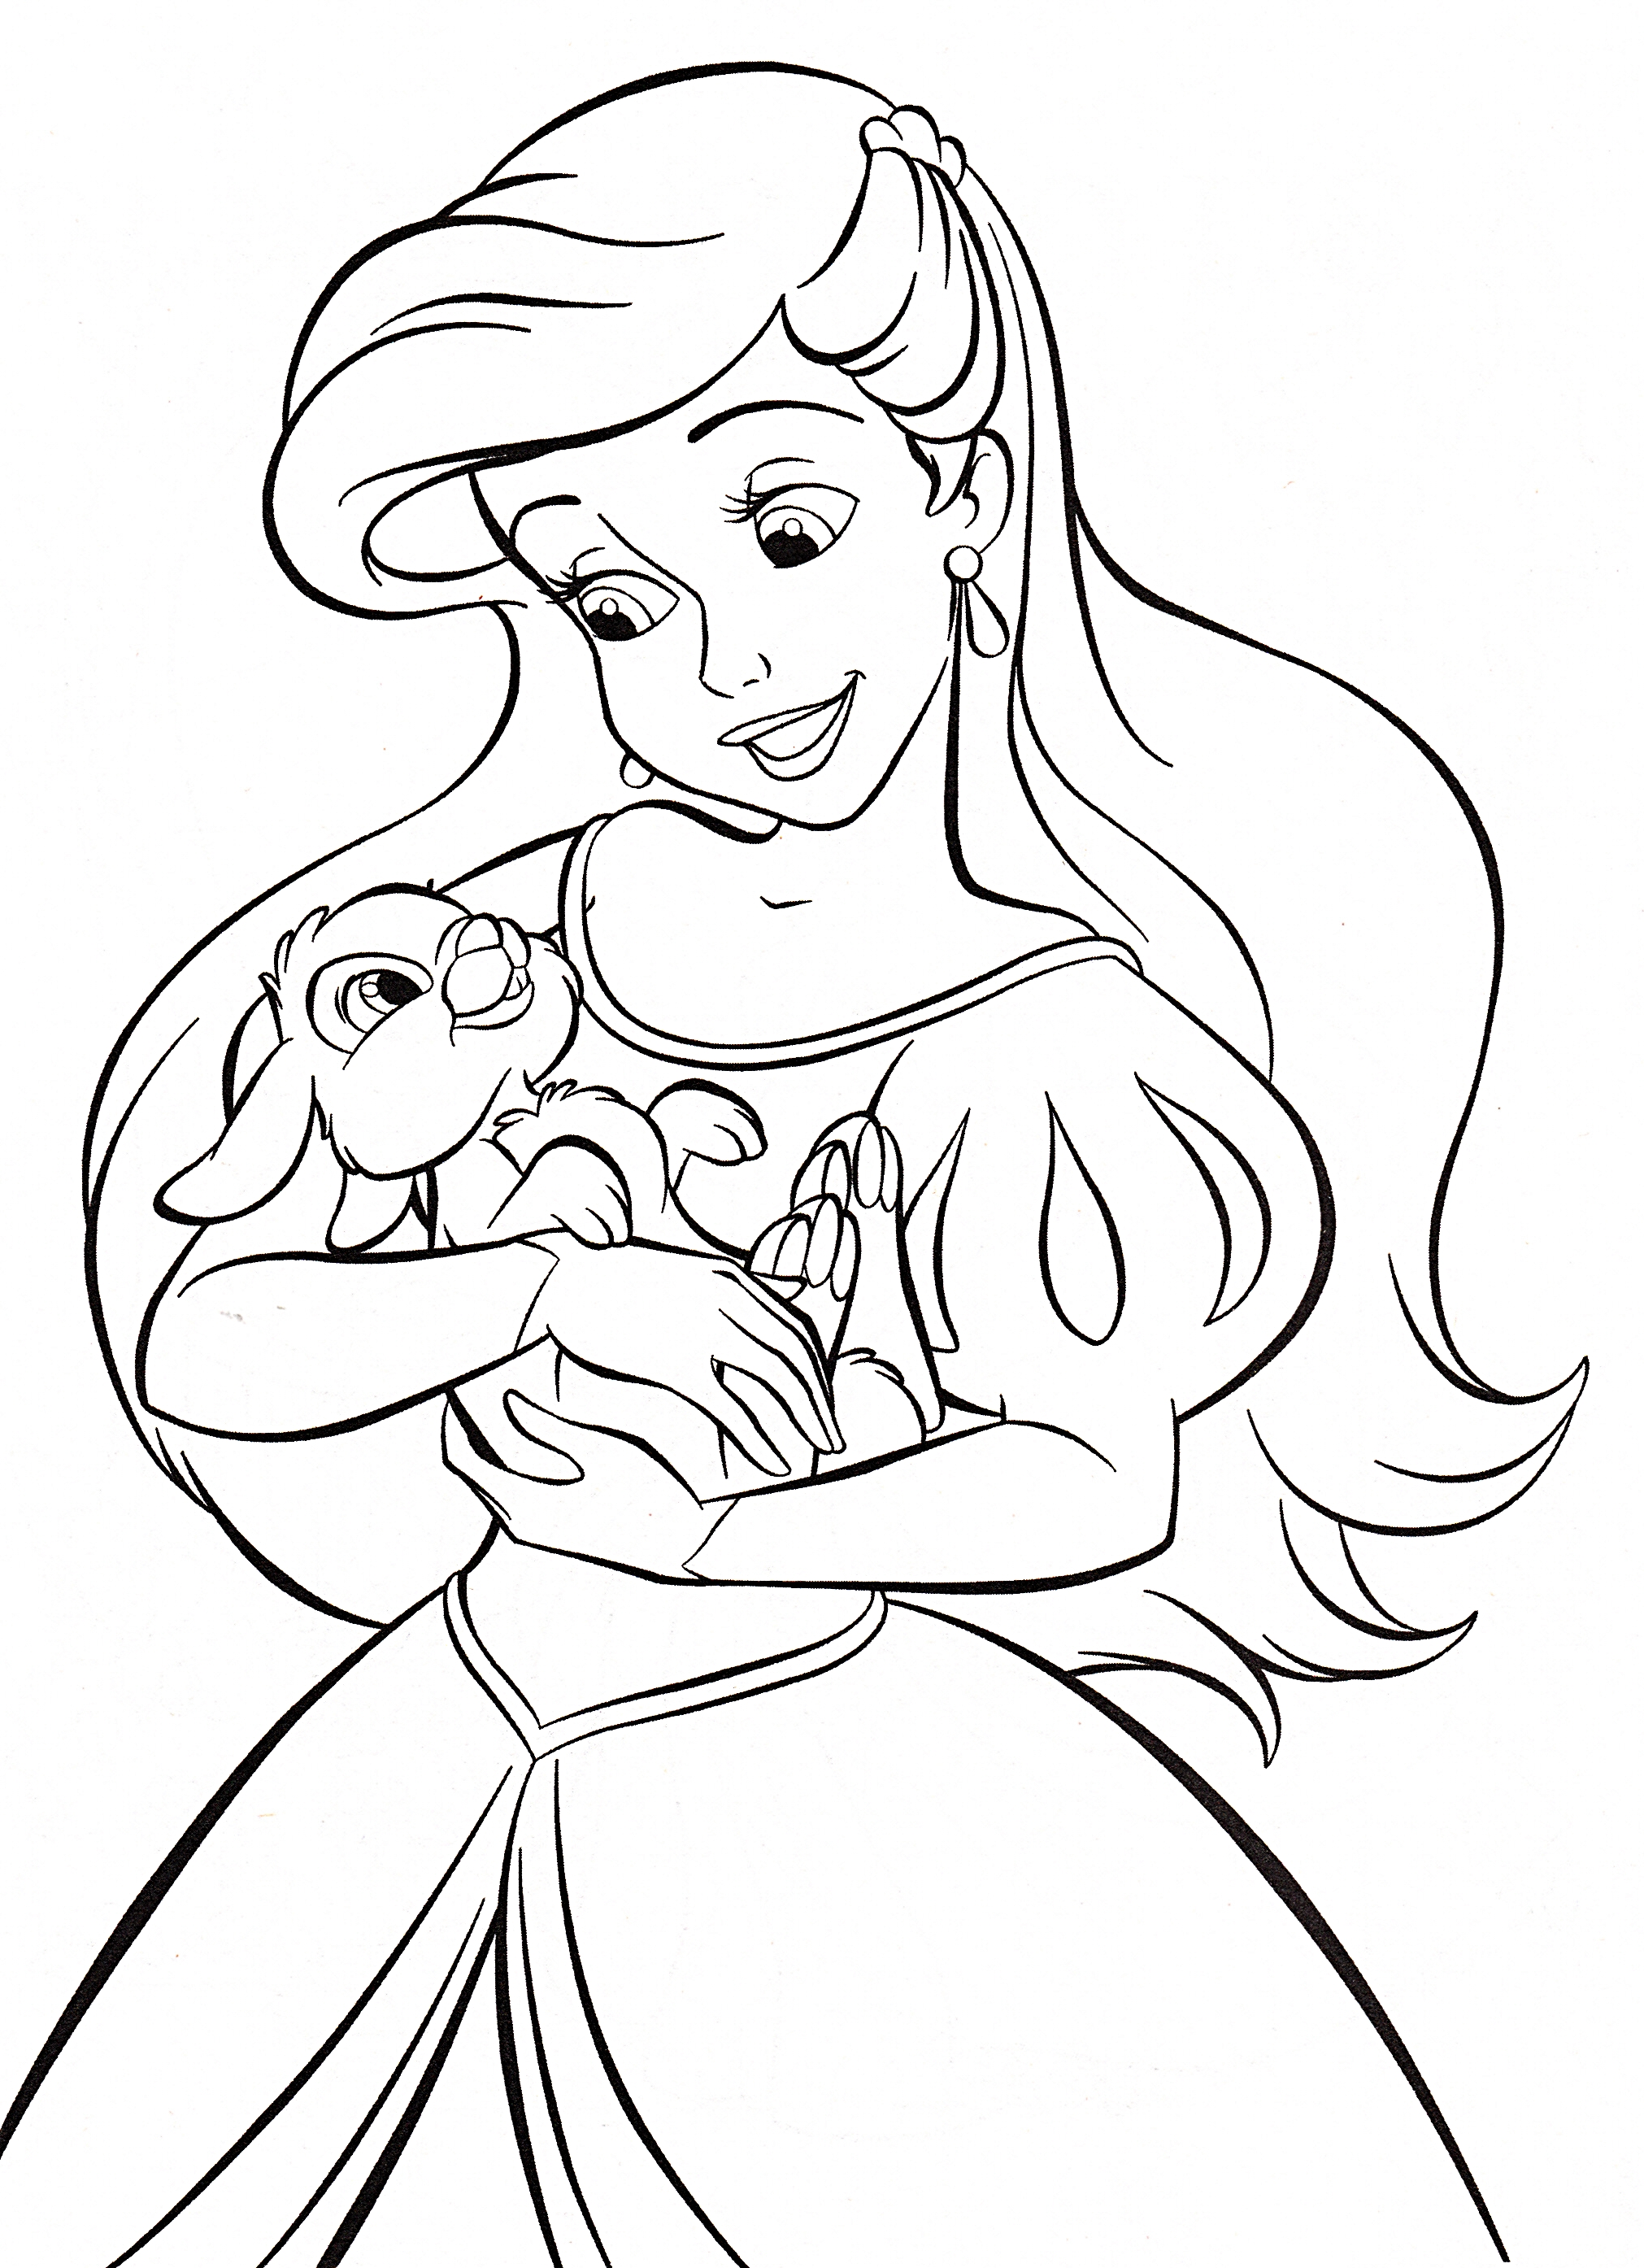 Walt Disney Coloring Pages Princess Ariel Walt Disney Disney Princess Baby Ariel Coloring Pages